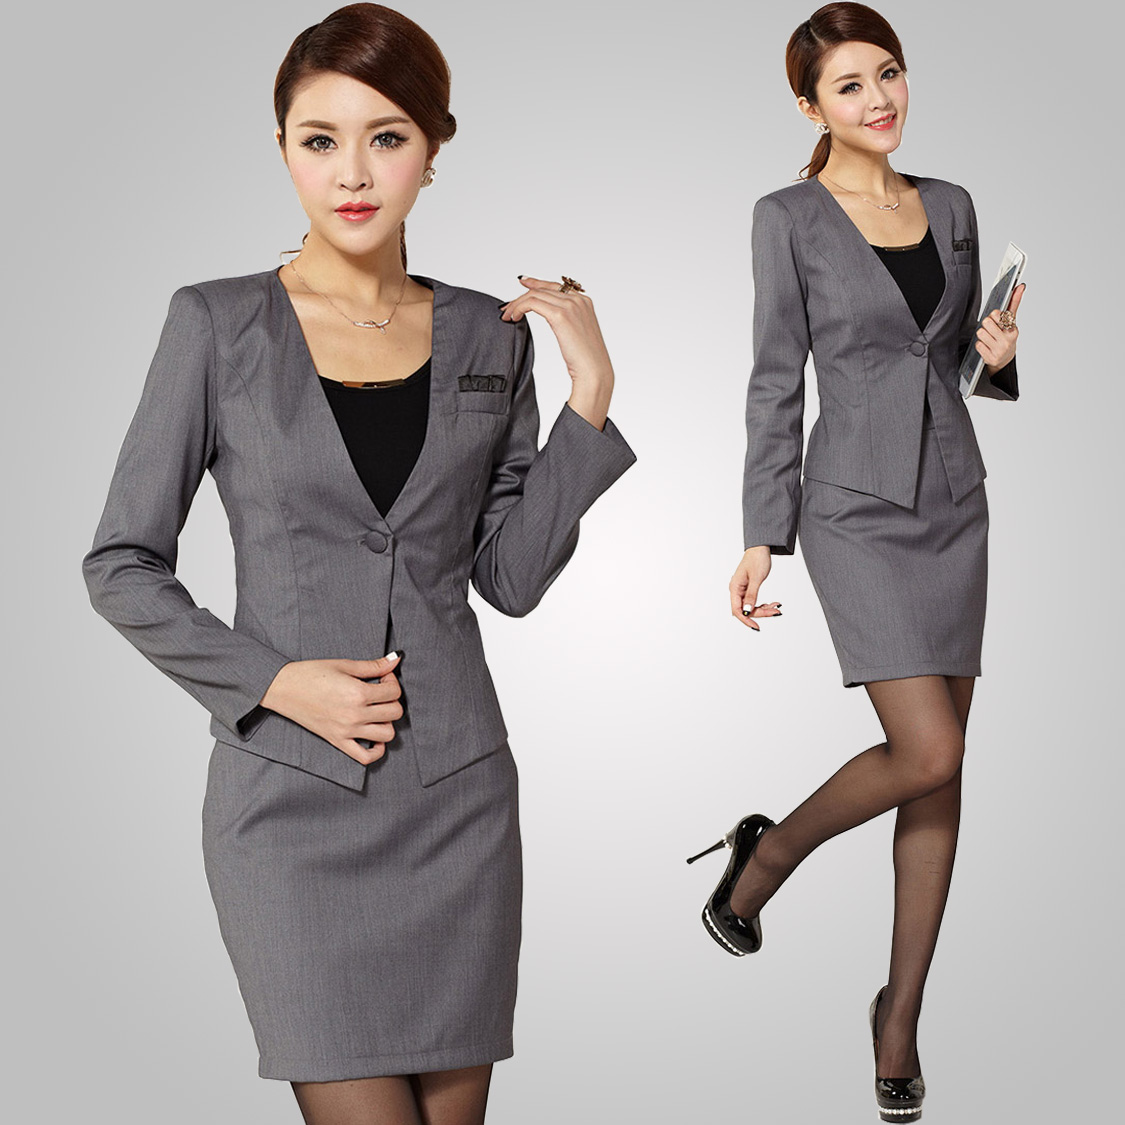 Ladies Wear - Get good quality of ladies wear for different occasions, like Ladies Evening Wear, Ladies Formal Wear, Gowns etc from Daisy (Estd ) Apparel.